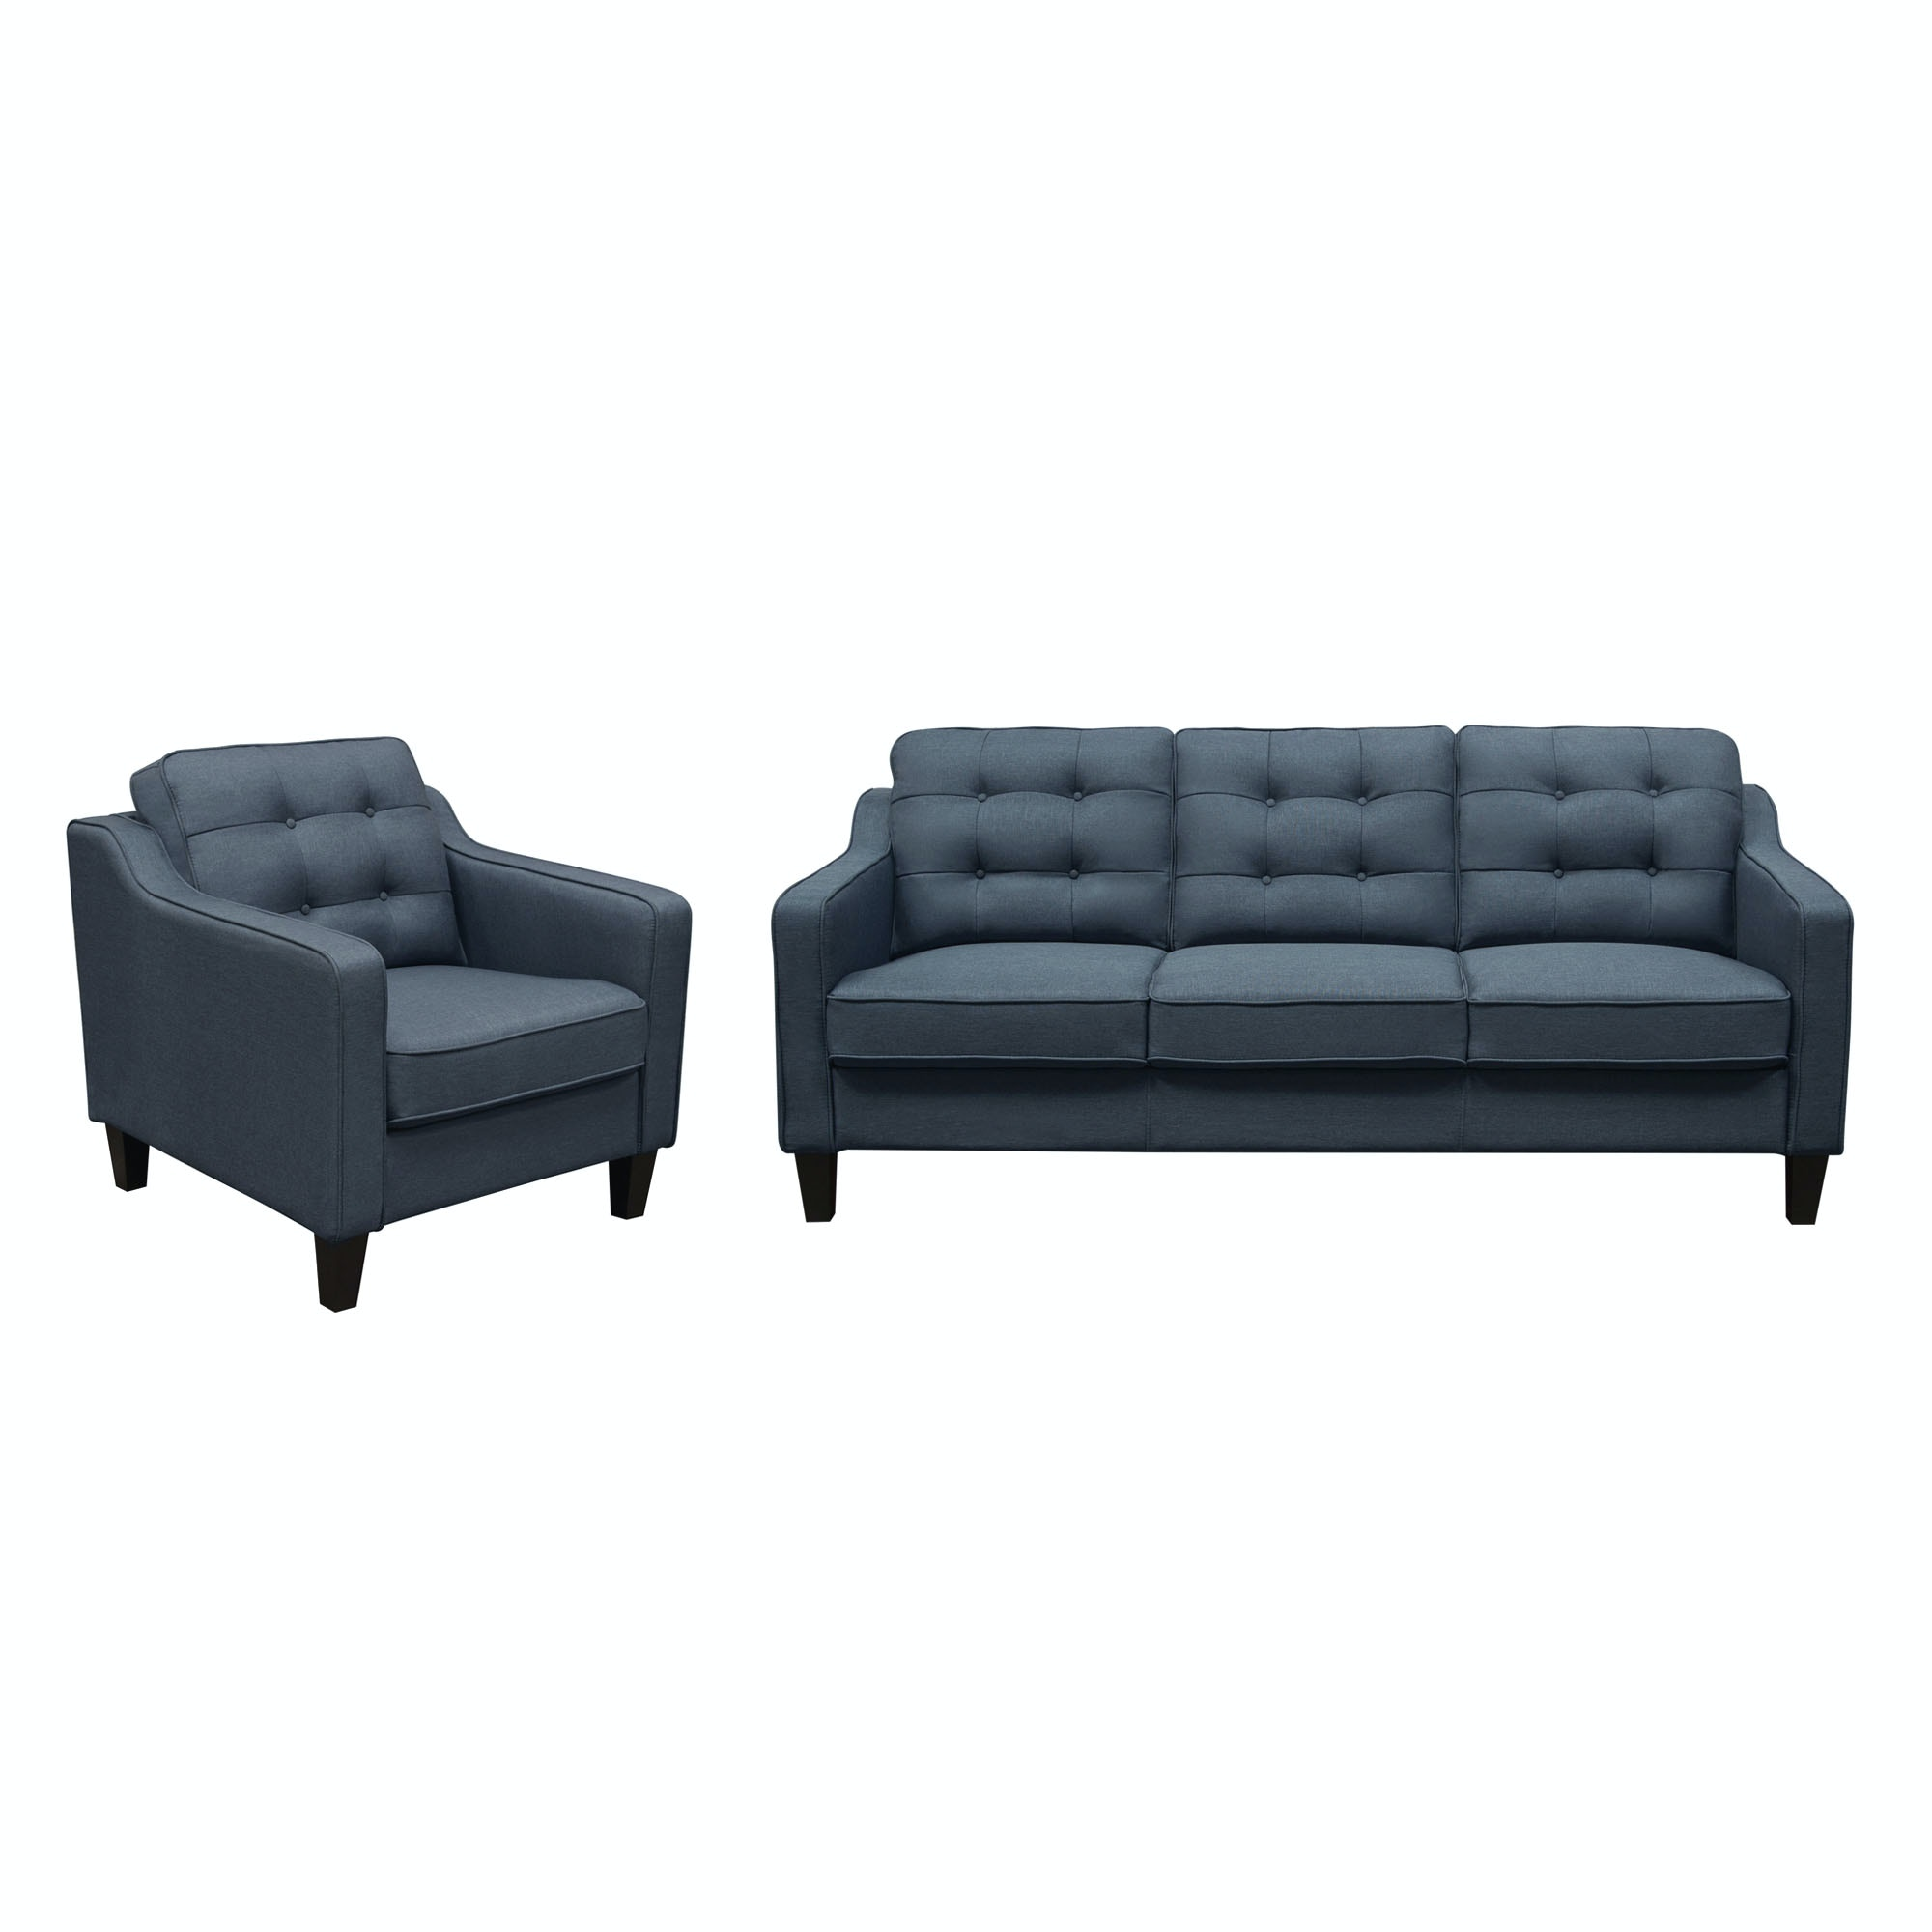 Delicieux Diamond Sofa Lucas Sofa Chair 2PC Set In Blue Fabric With Tufted Back And  Wood Leg